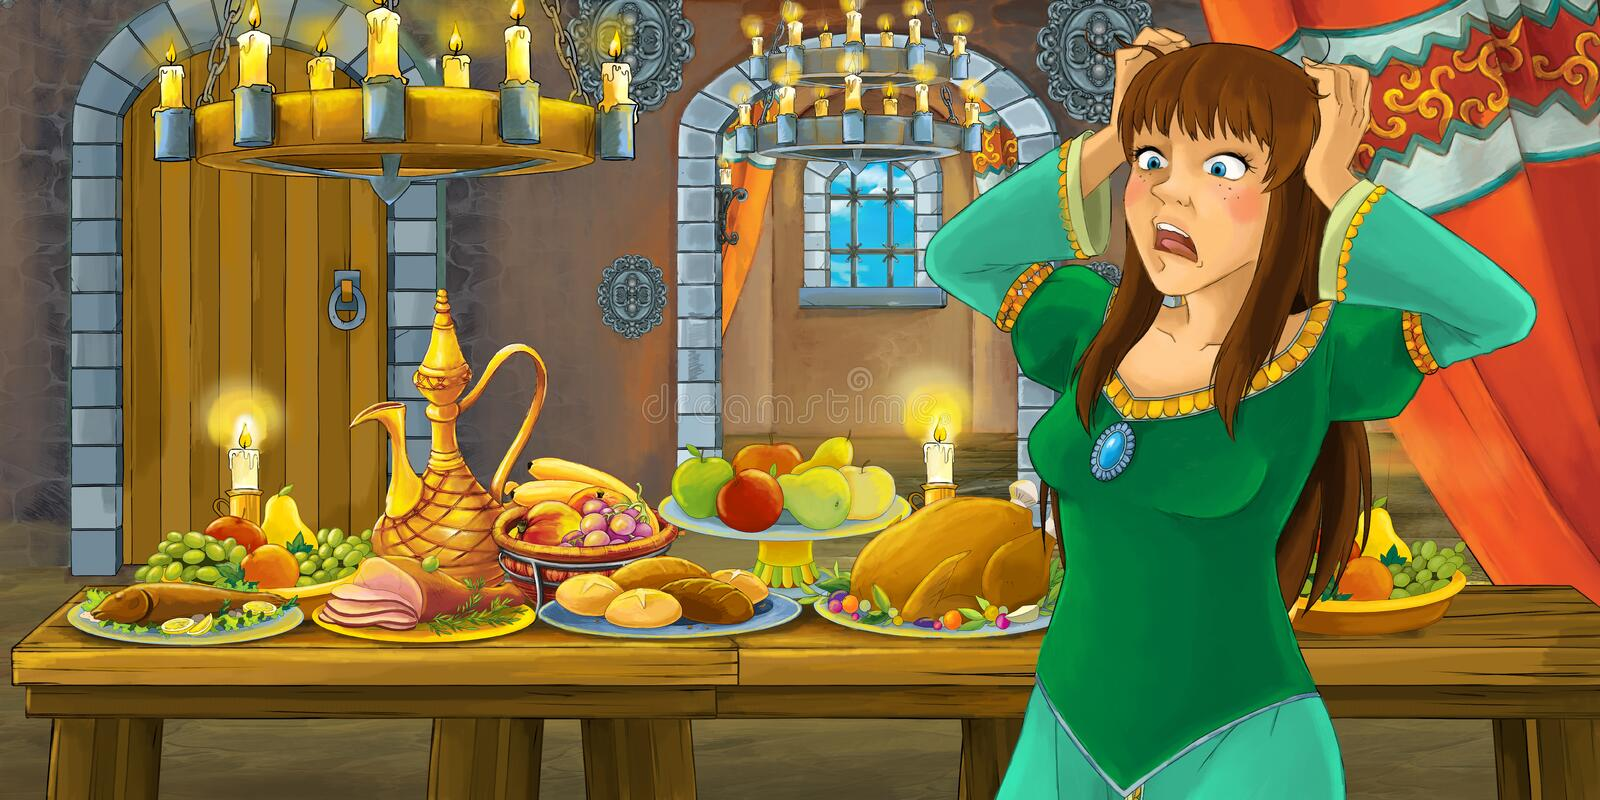 Cartoon fairy tale with princess in the castle by the table full of food looking and smiling vector illustration